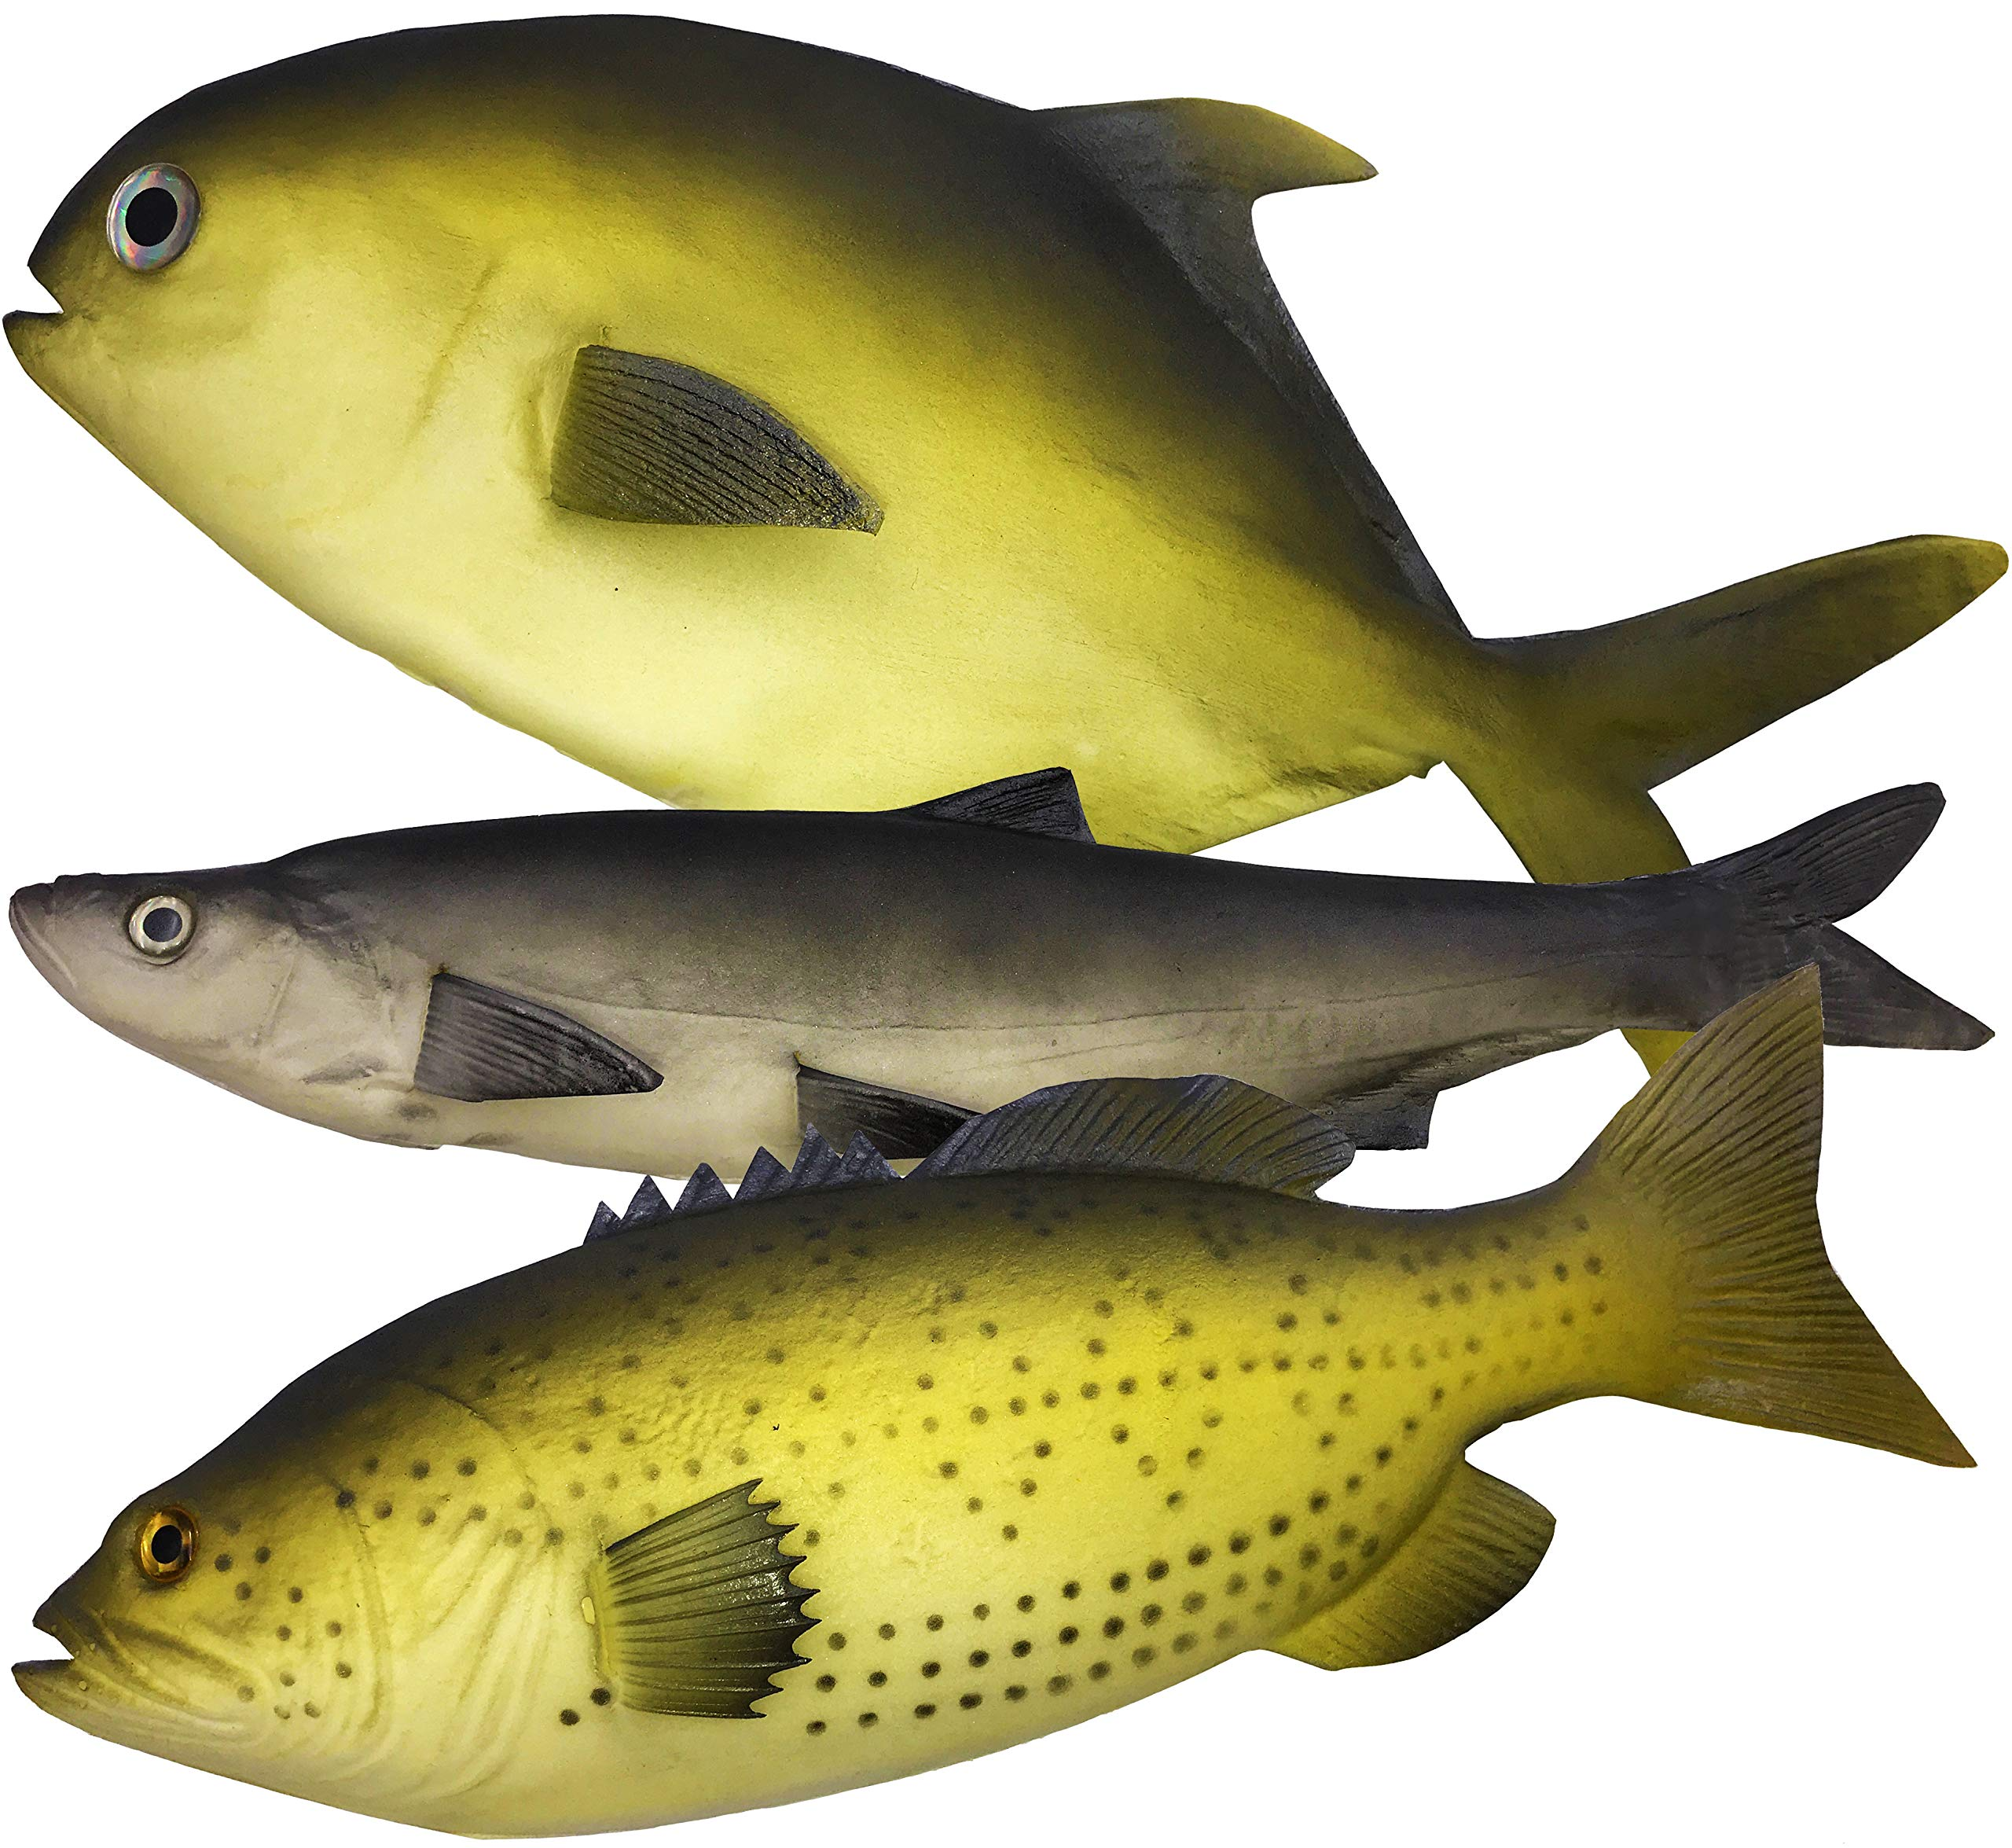 3 Large Artificial Fish 2018- 12 to 16 in - Premium Quality - Realistic Fake Fish - Best Looking Real Fish Perfect for Food Display or Food Photography Prop - Flexible Foam Material